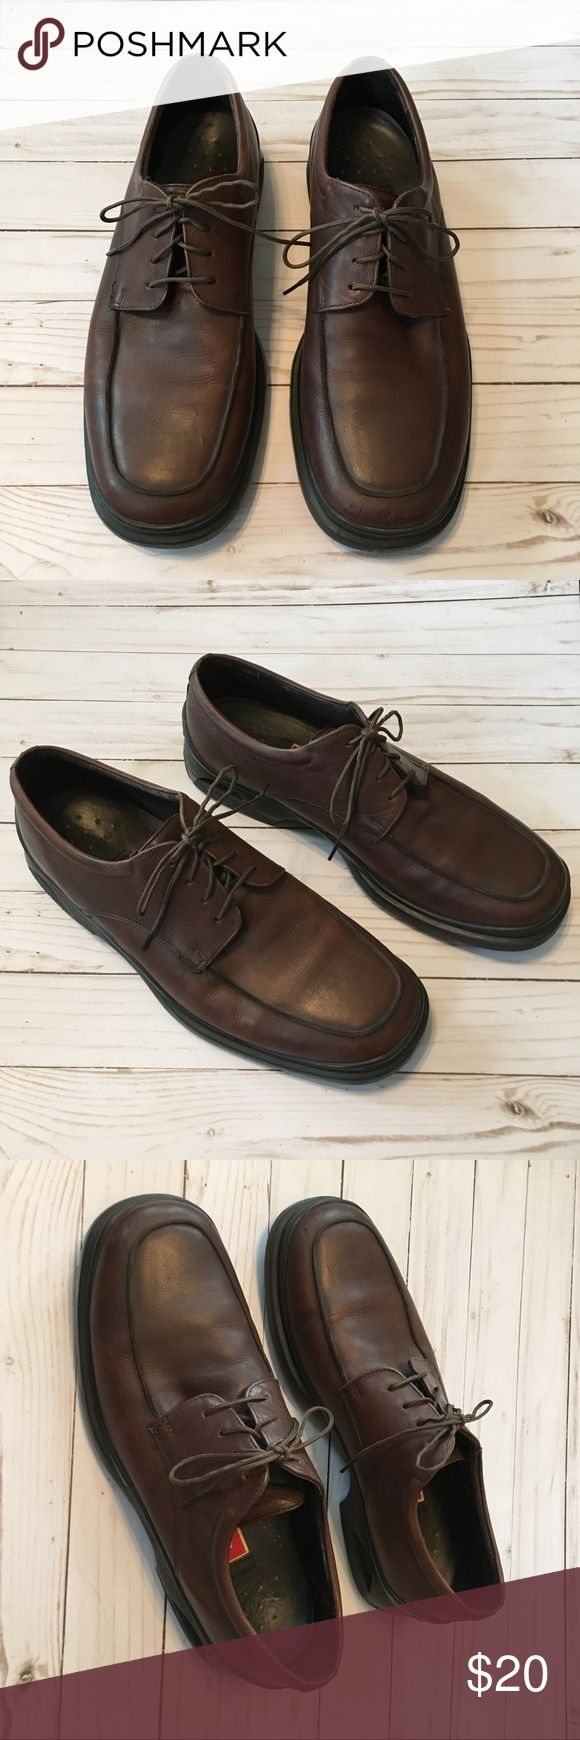 Cole Haan dress shoes. Size 9.5 Brown leather men's Cole Haan dress shoes. They have Nike Air soles. Size 9.5 Cole Haan Shoes Loafers & Slip-Ons